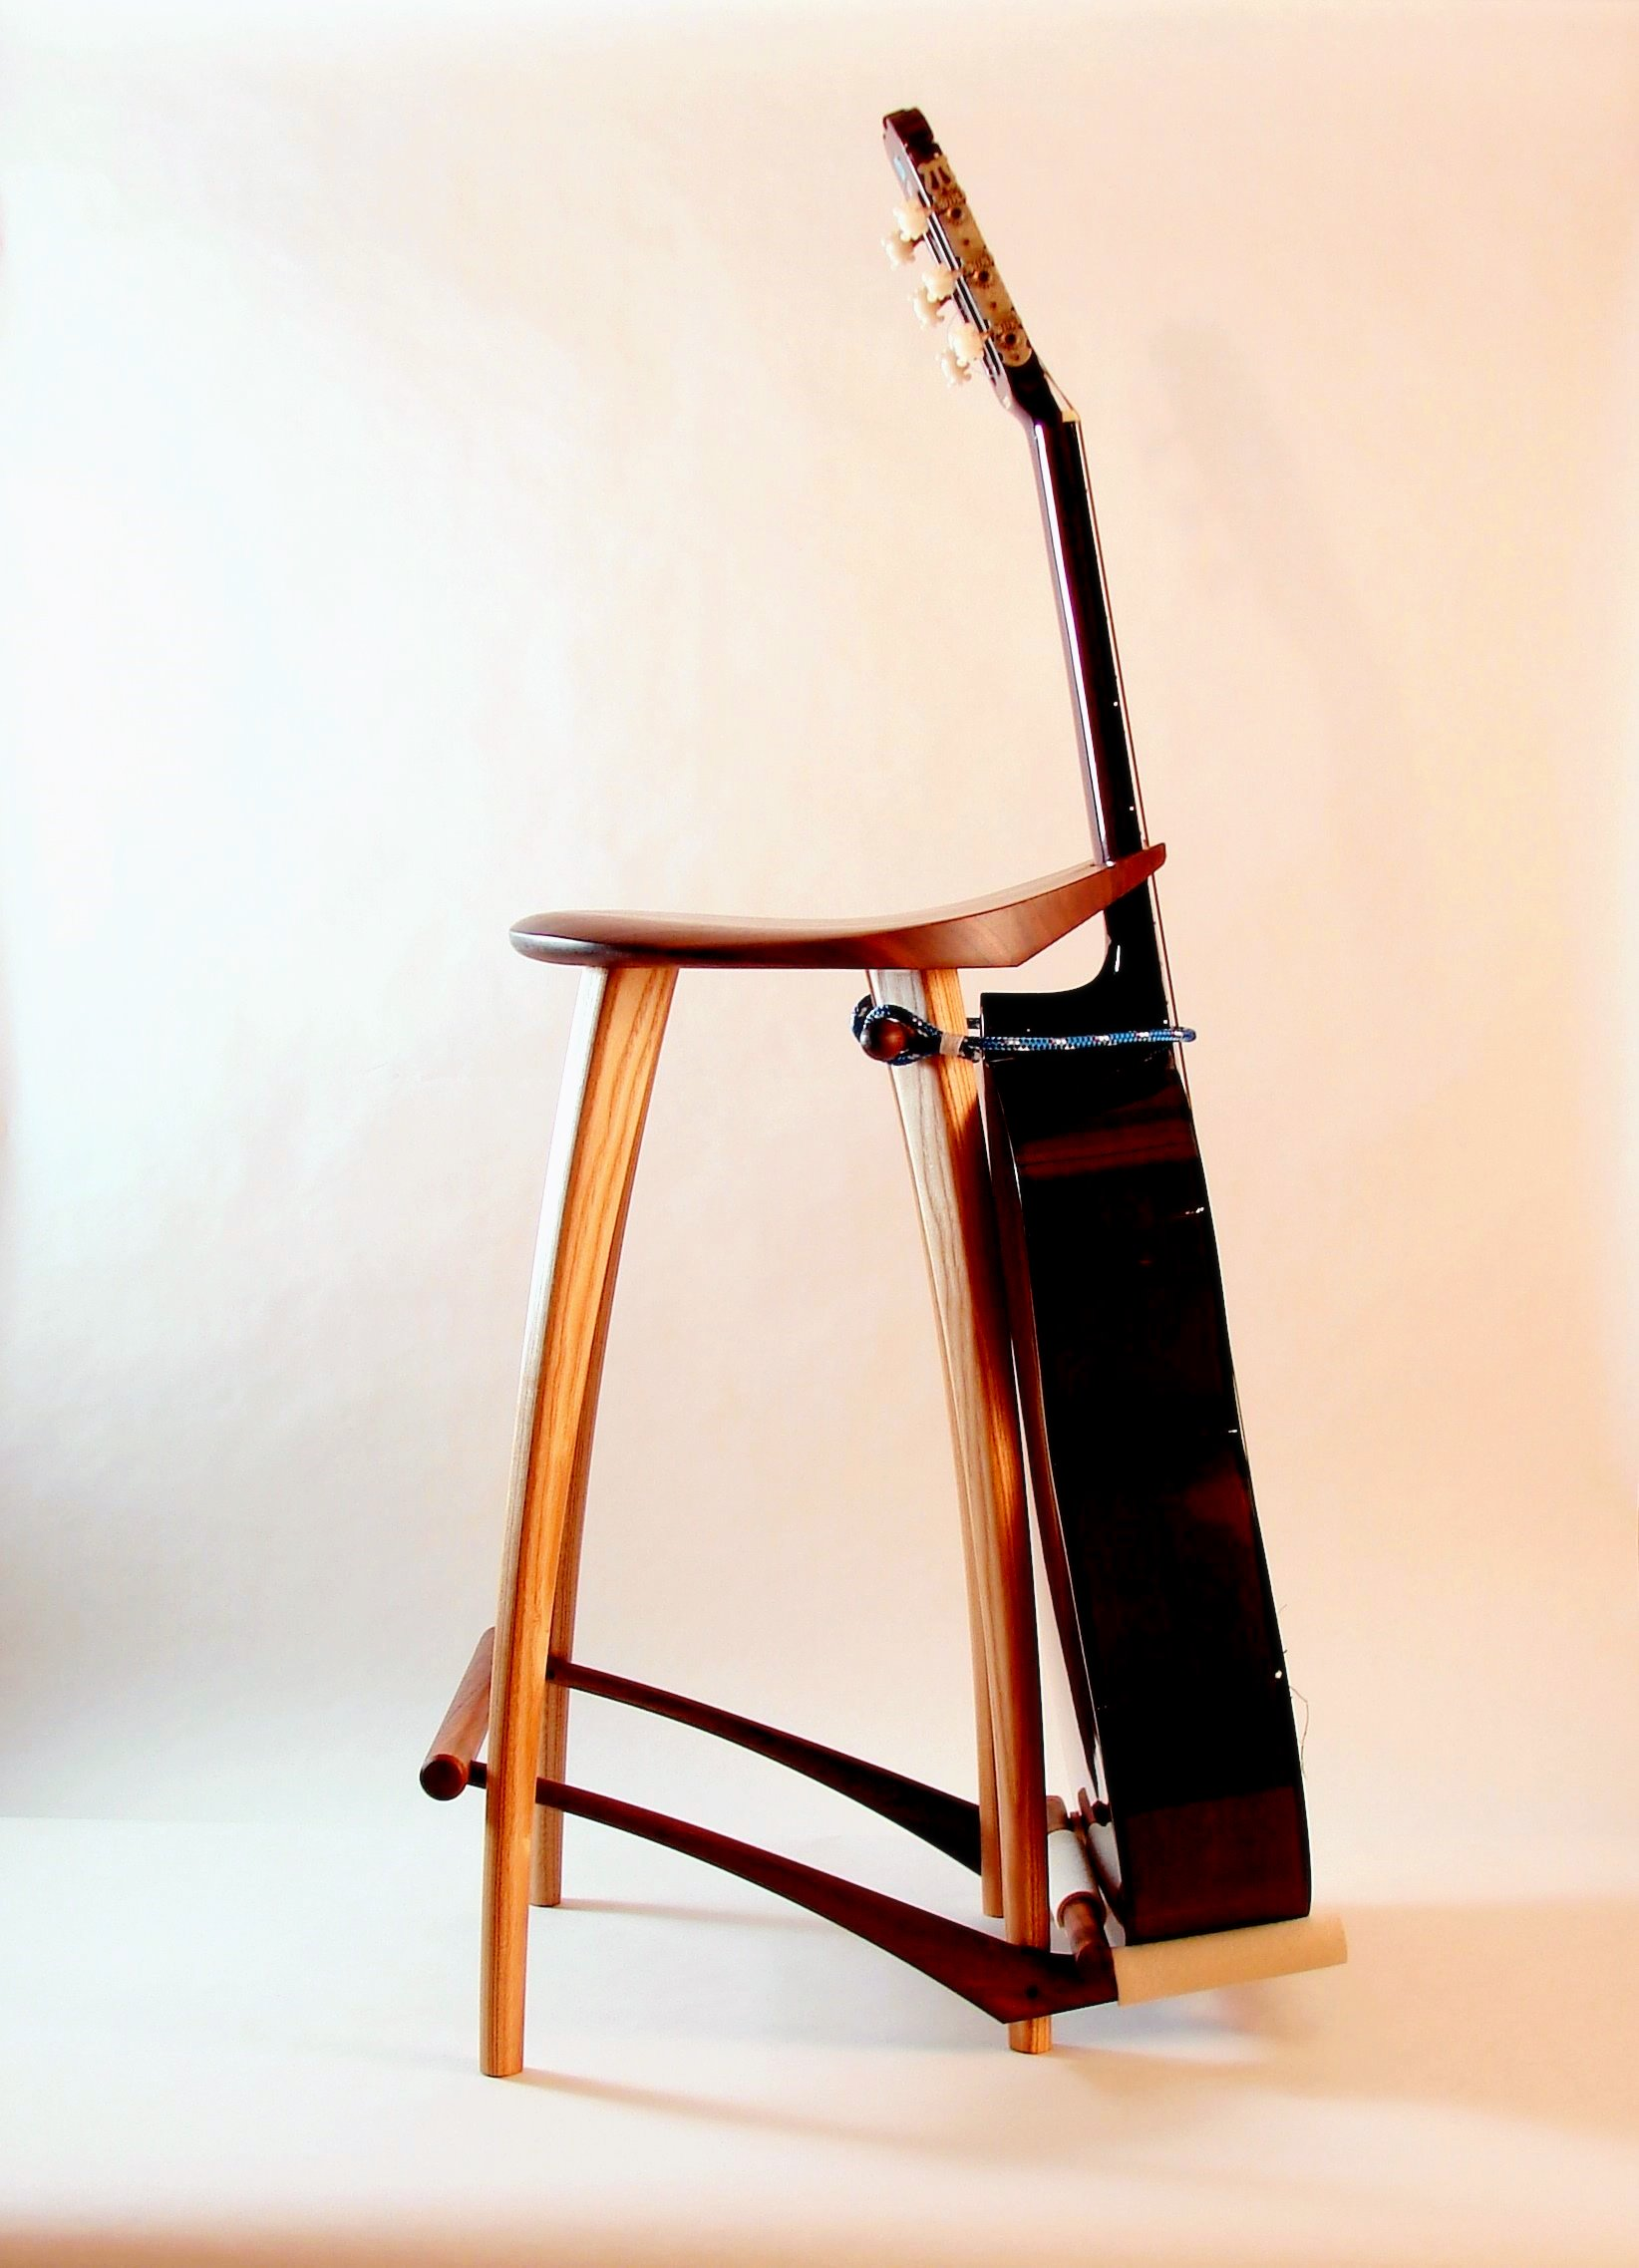 Guitar Stool Fillingham Art Furniture Design